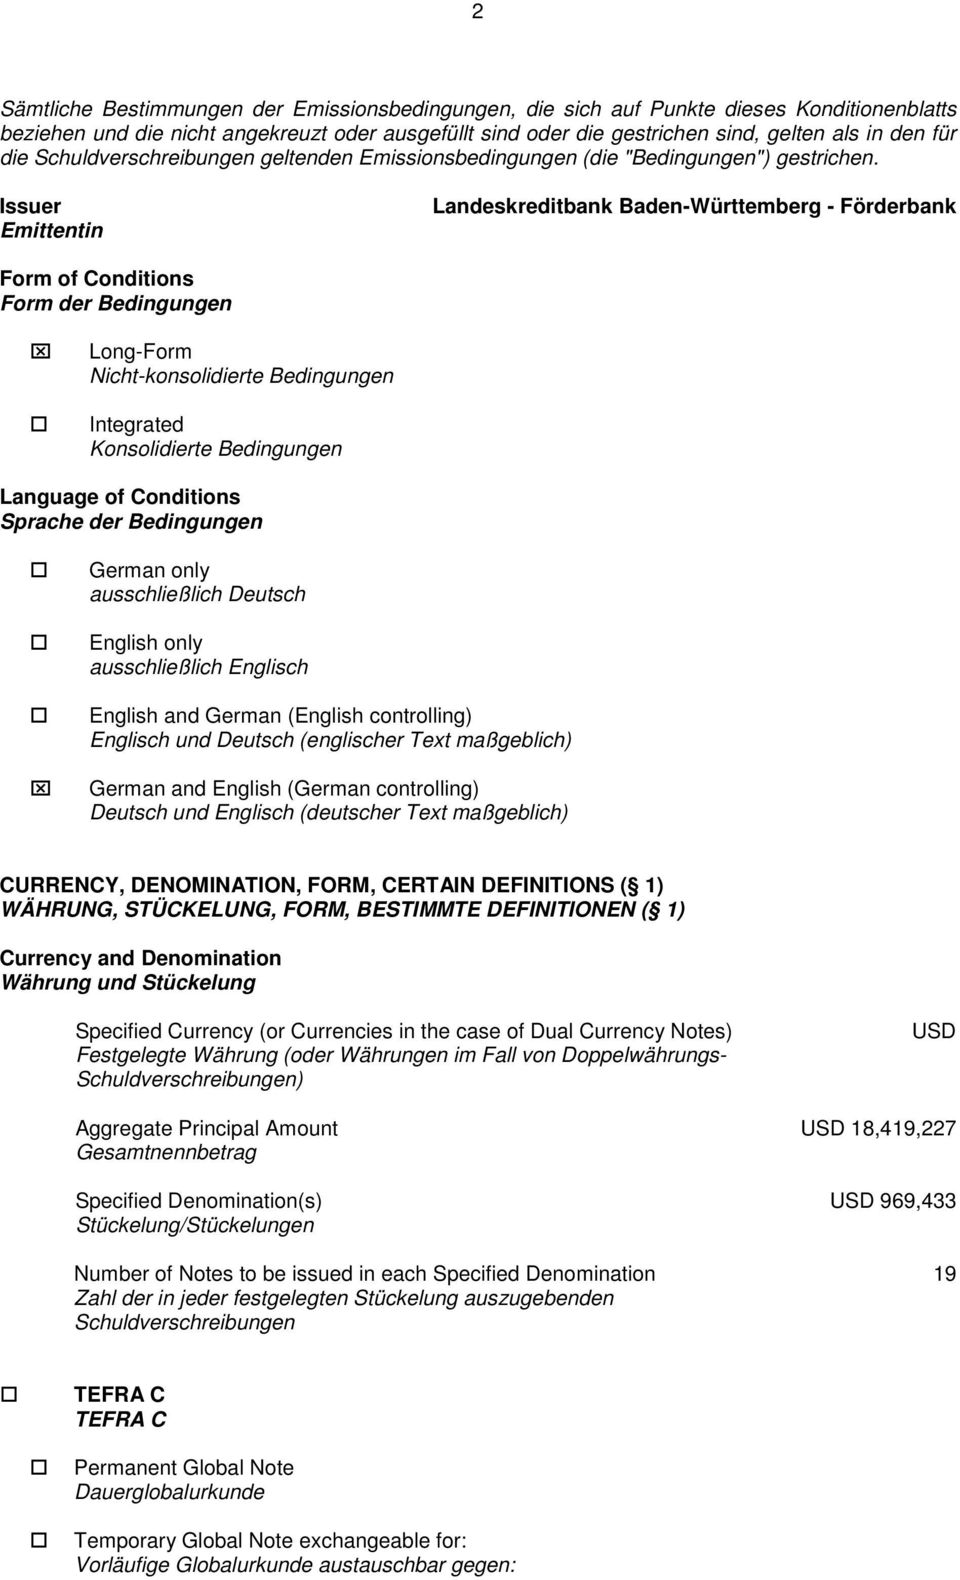 Issuer Emittentin Landeskreditbank Baden-Württemberg - Förderbank Form of Conditions Form der Bedingungen Long-Form Nicht-konsolidierte Bedingungen Integrated Konsolidierte Bedingungen Language of